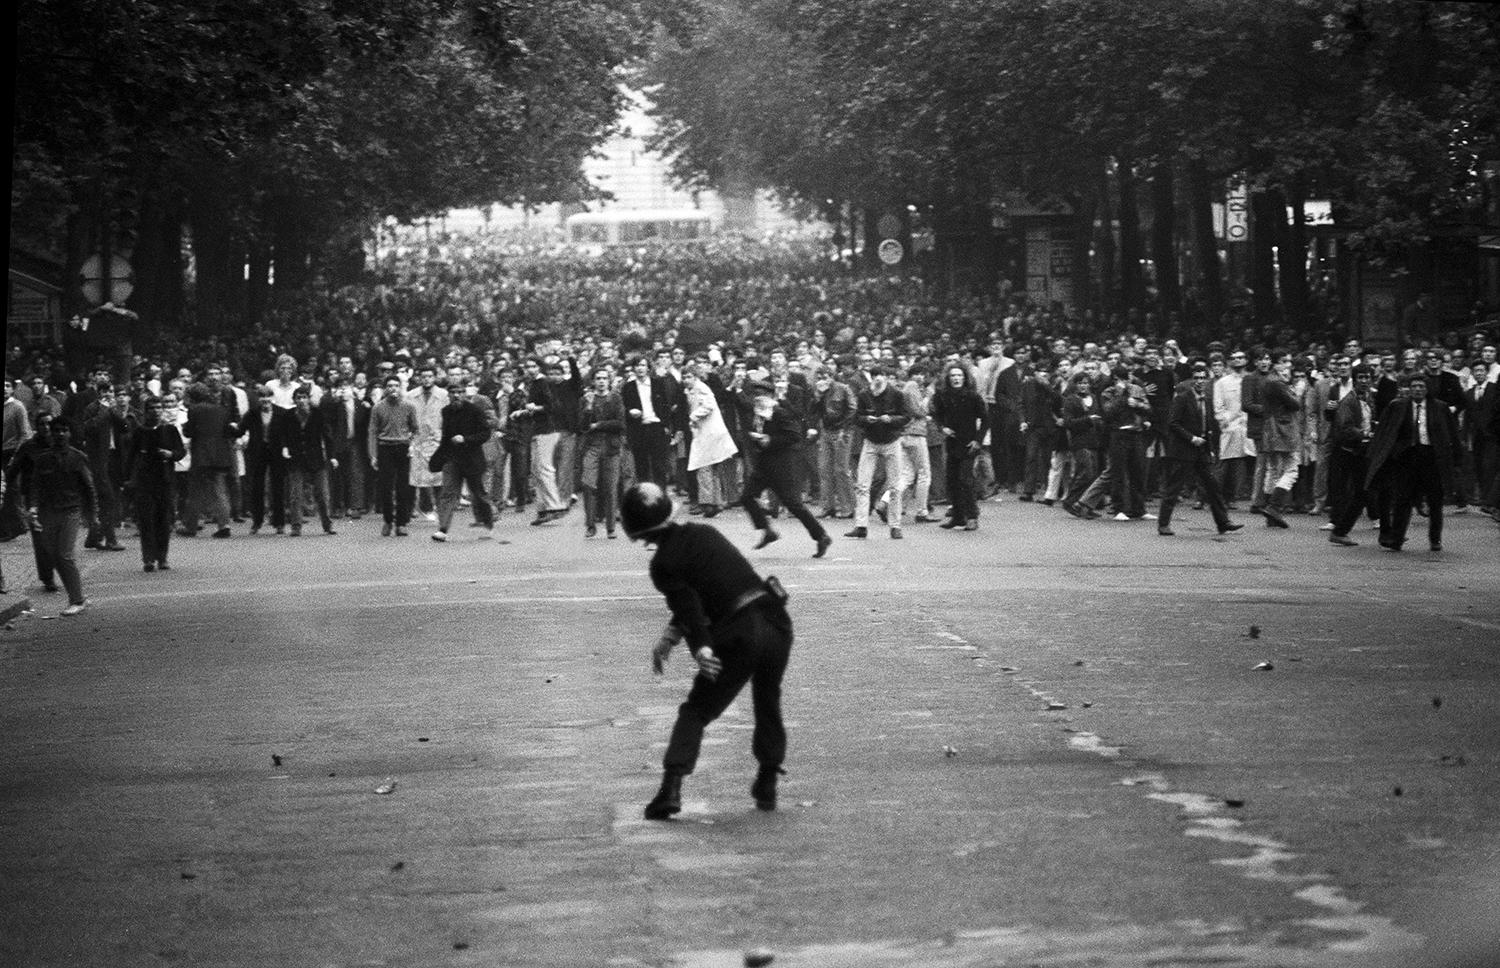 """<p>A police officer confronts defiant students on the Boulevard Saint-Michel during the first day of violent clashes in Paris on May 6, 1968. In all, 1,045 civilians were wounded during what became known as """"the night of the barricades."""" (Photo: Gökşin Sipahioğlu/SIPA) </p>"""